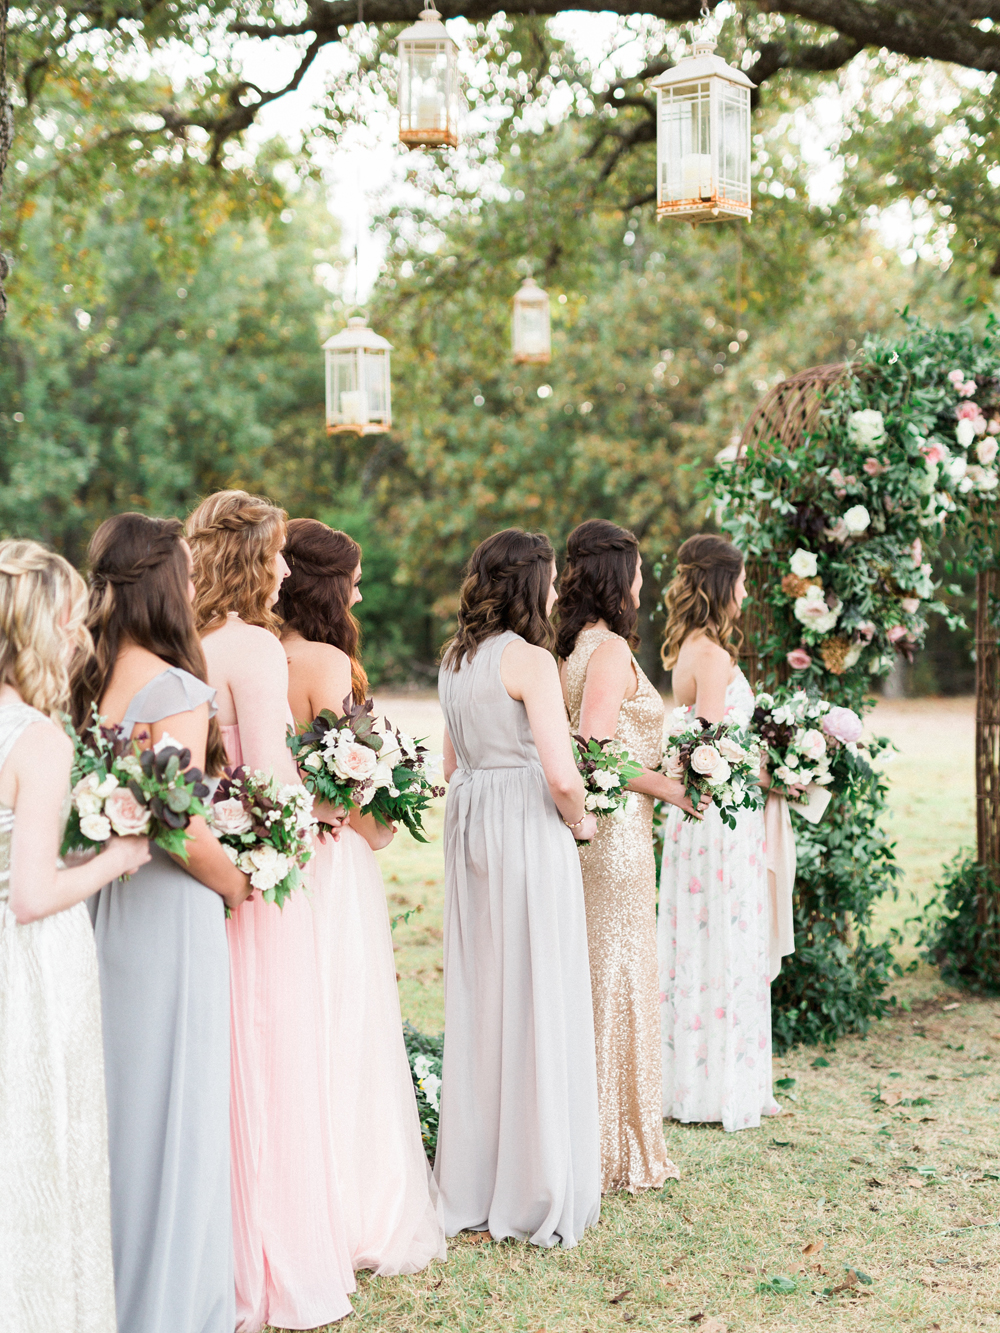 bridesmaids - photo by Elisabeth Carol Photography http://ruffledblog.com/picturesque-garden-wedding-at-white-sparrow-barn